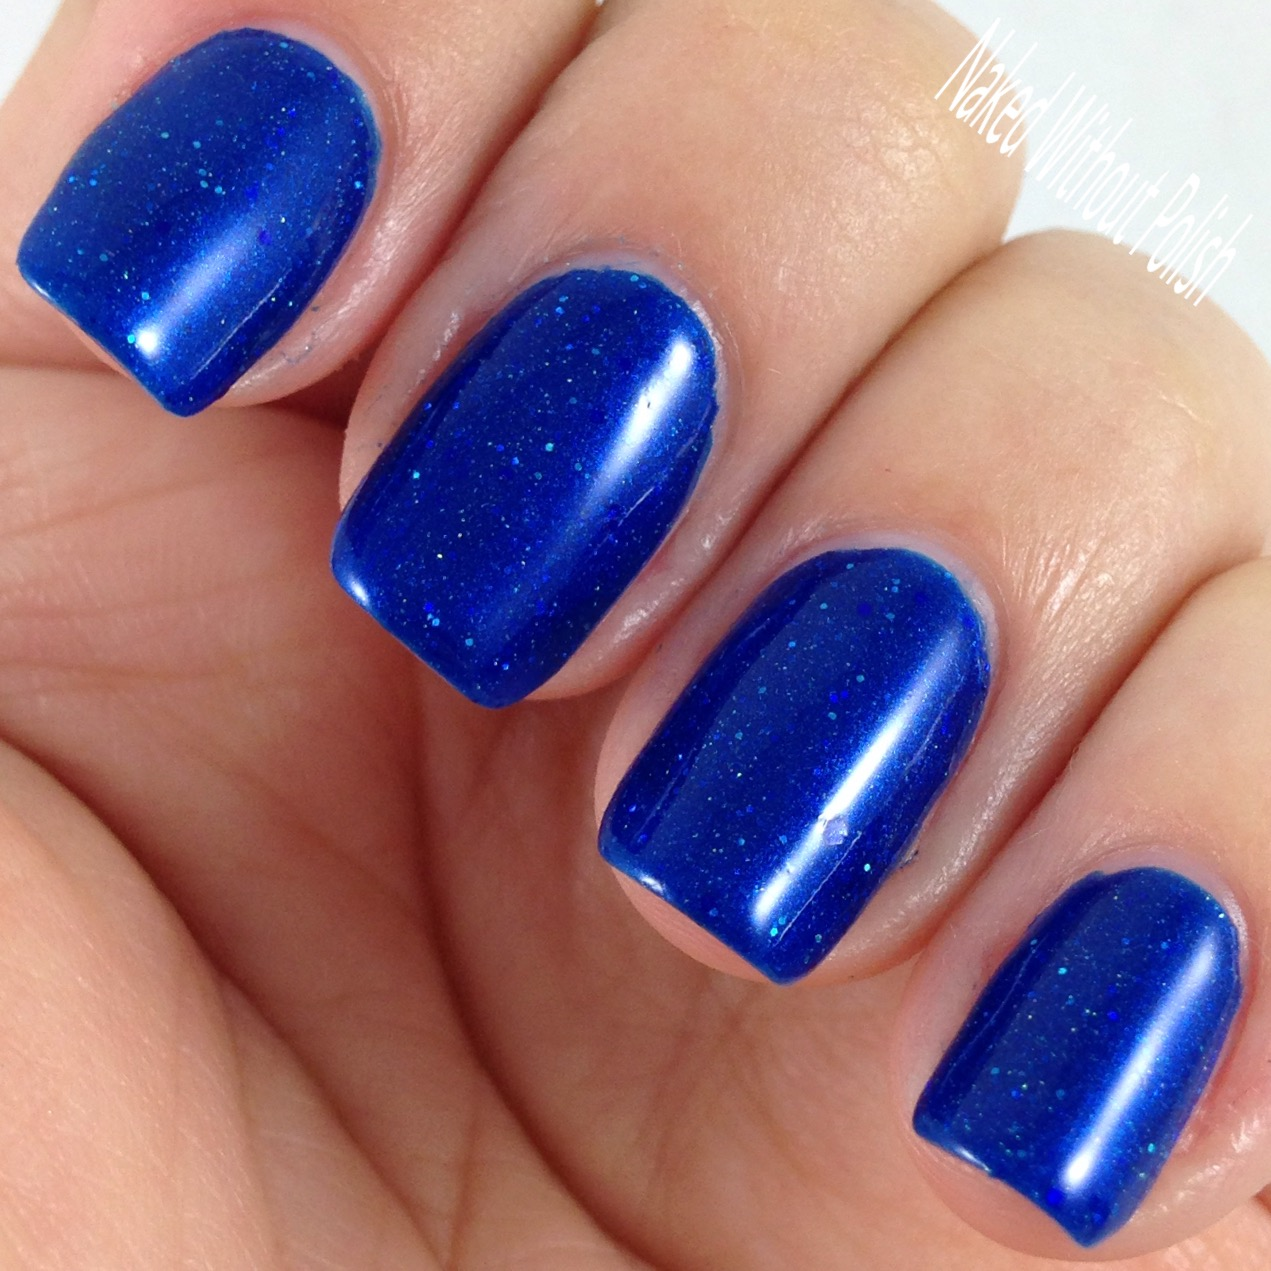 Bad-Bitch-Polish-Blue-My-Mind-8